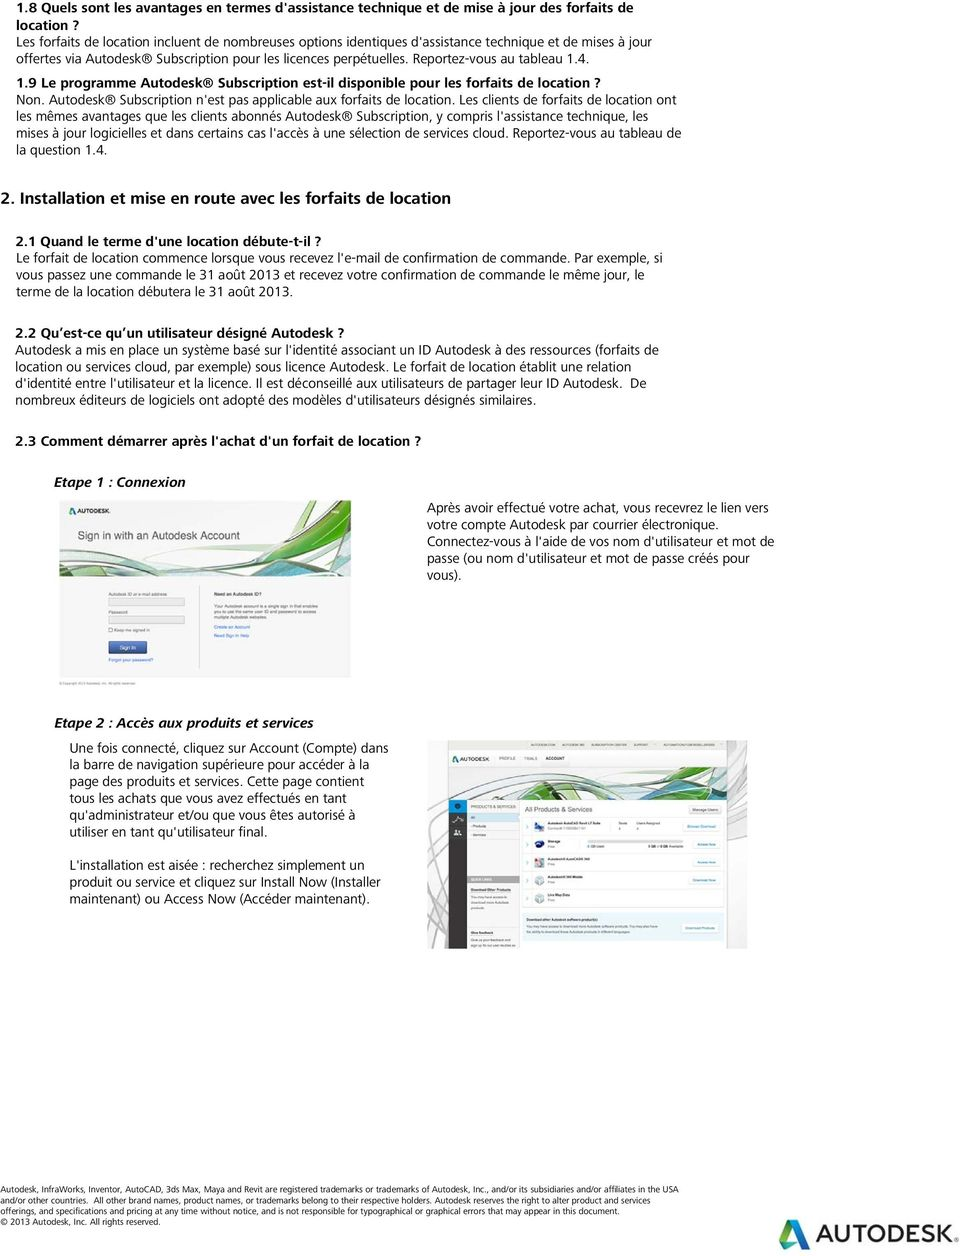 Reportez-vous au tableau 1.4. 1.9 Le programme Autodesk Subscription est-il disponible pour les forfaits de location? Non. Autodesk Subscription n'est pas applicable aux forfaits de location.